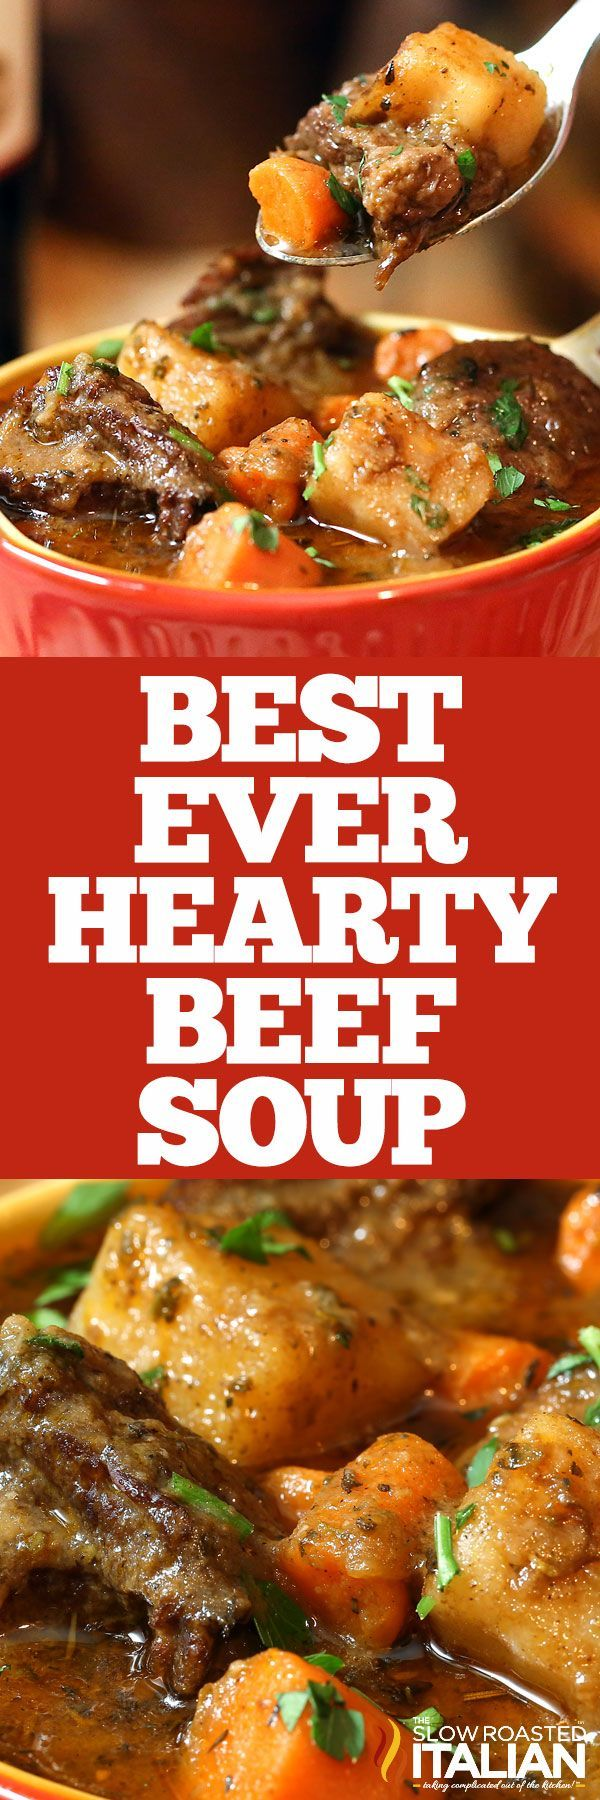 Look no further, this is the BEST EVER Hearty Beef Soup!  With juicy tender chunks of beef that melt in your mouth and a glorious rich soup loaded with vegetables it is truly the ultimate comfort food. This simple recipe has minimal active time and it is sure to be on your table again and again.  It has been on ours! If you are looking for the ultimate comfort food, this is the one.